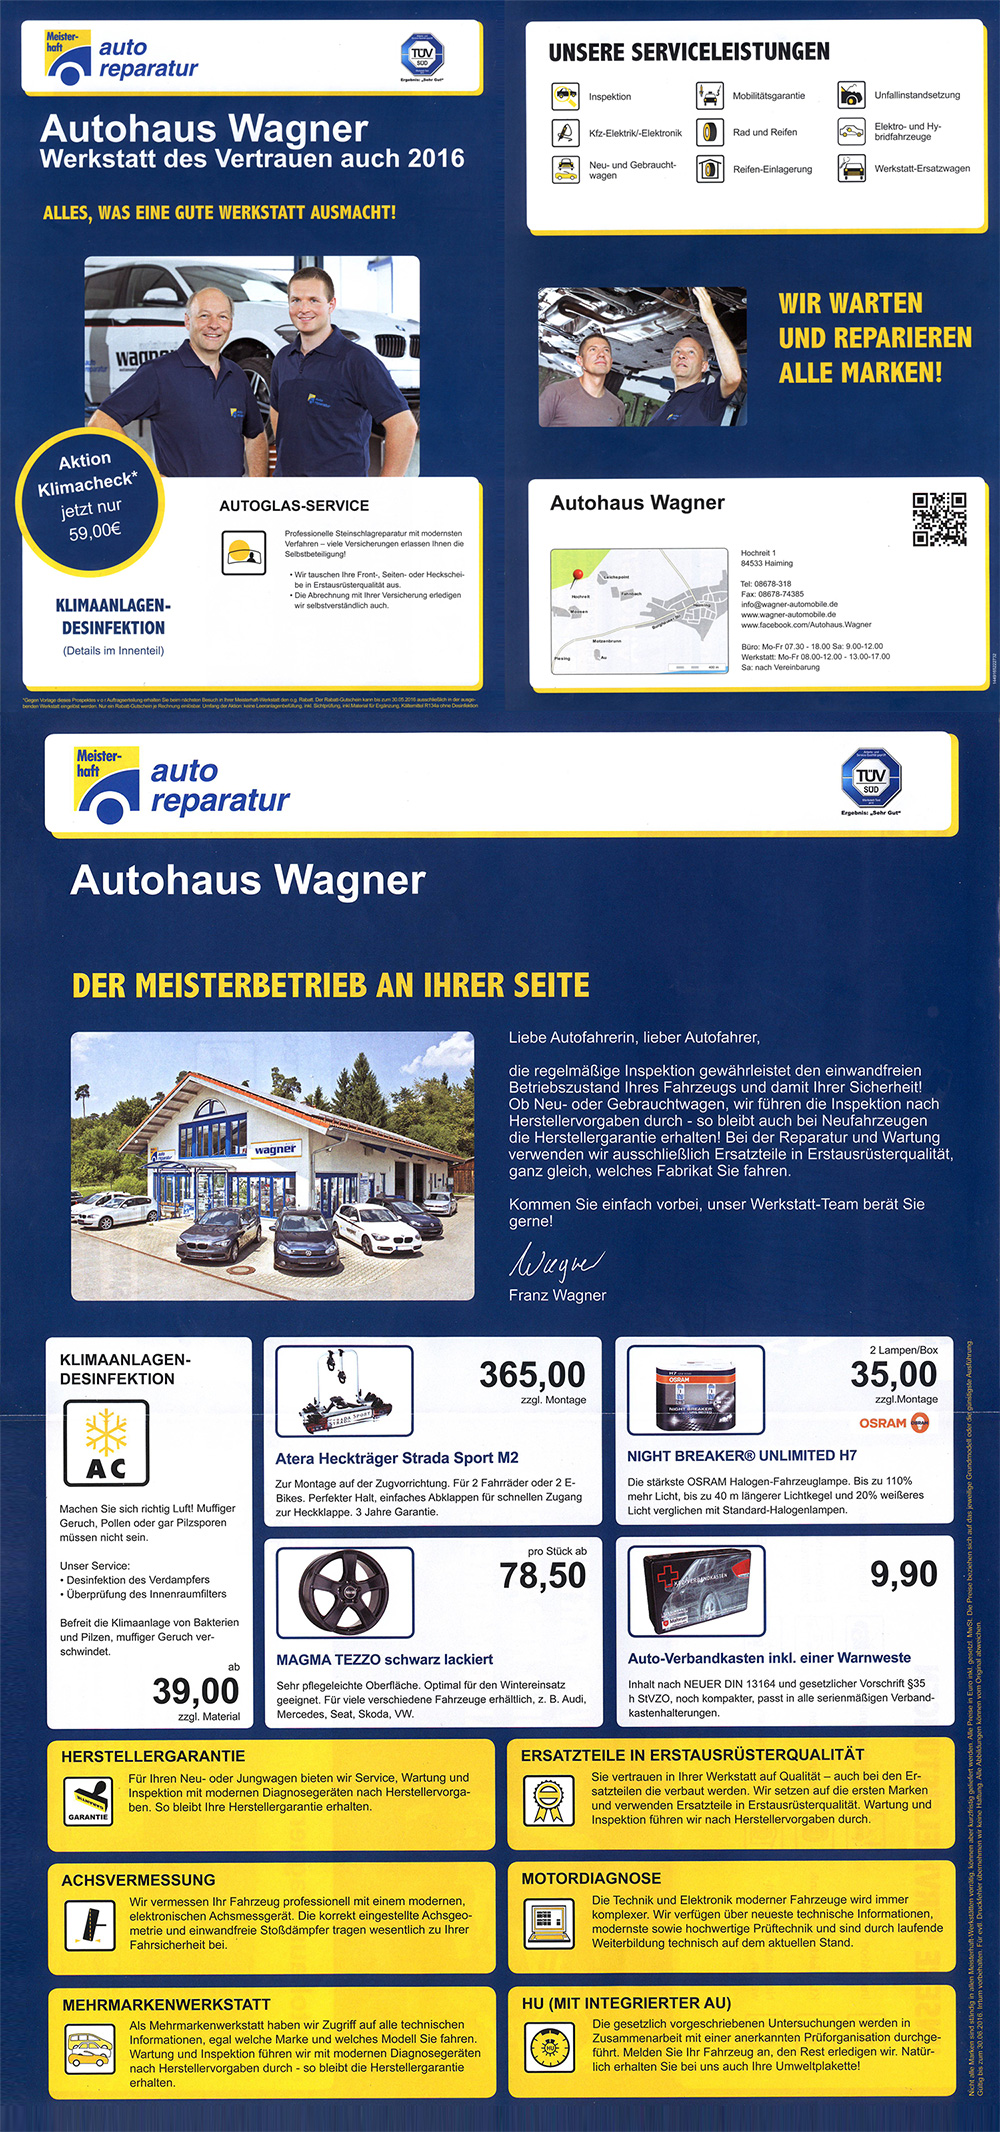 autohaus wagner wagner automobile. Black Bedroom Furniture Sets. Home Design Ideas